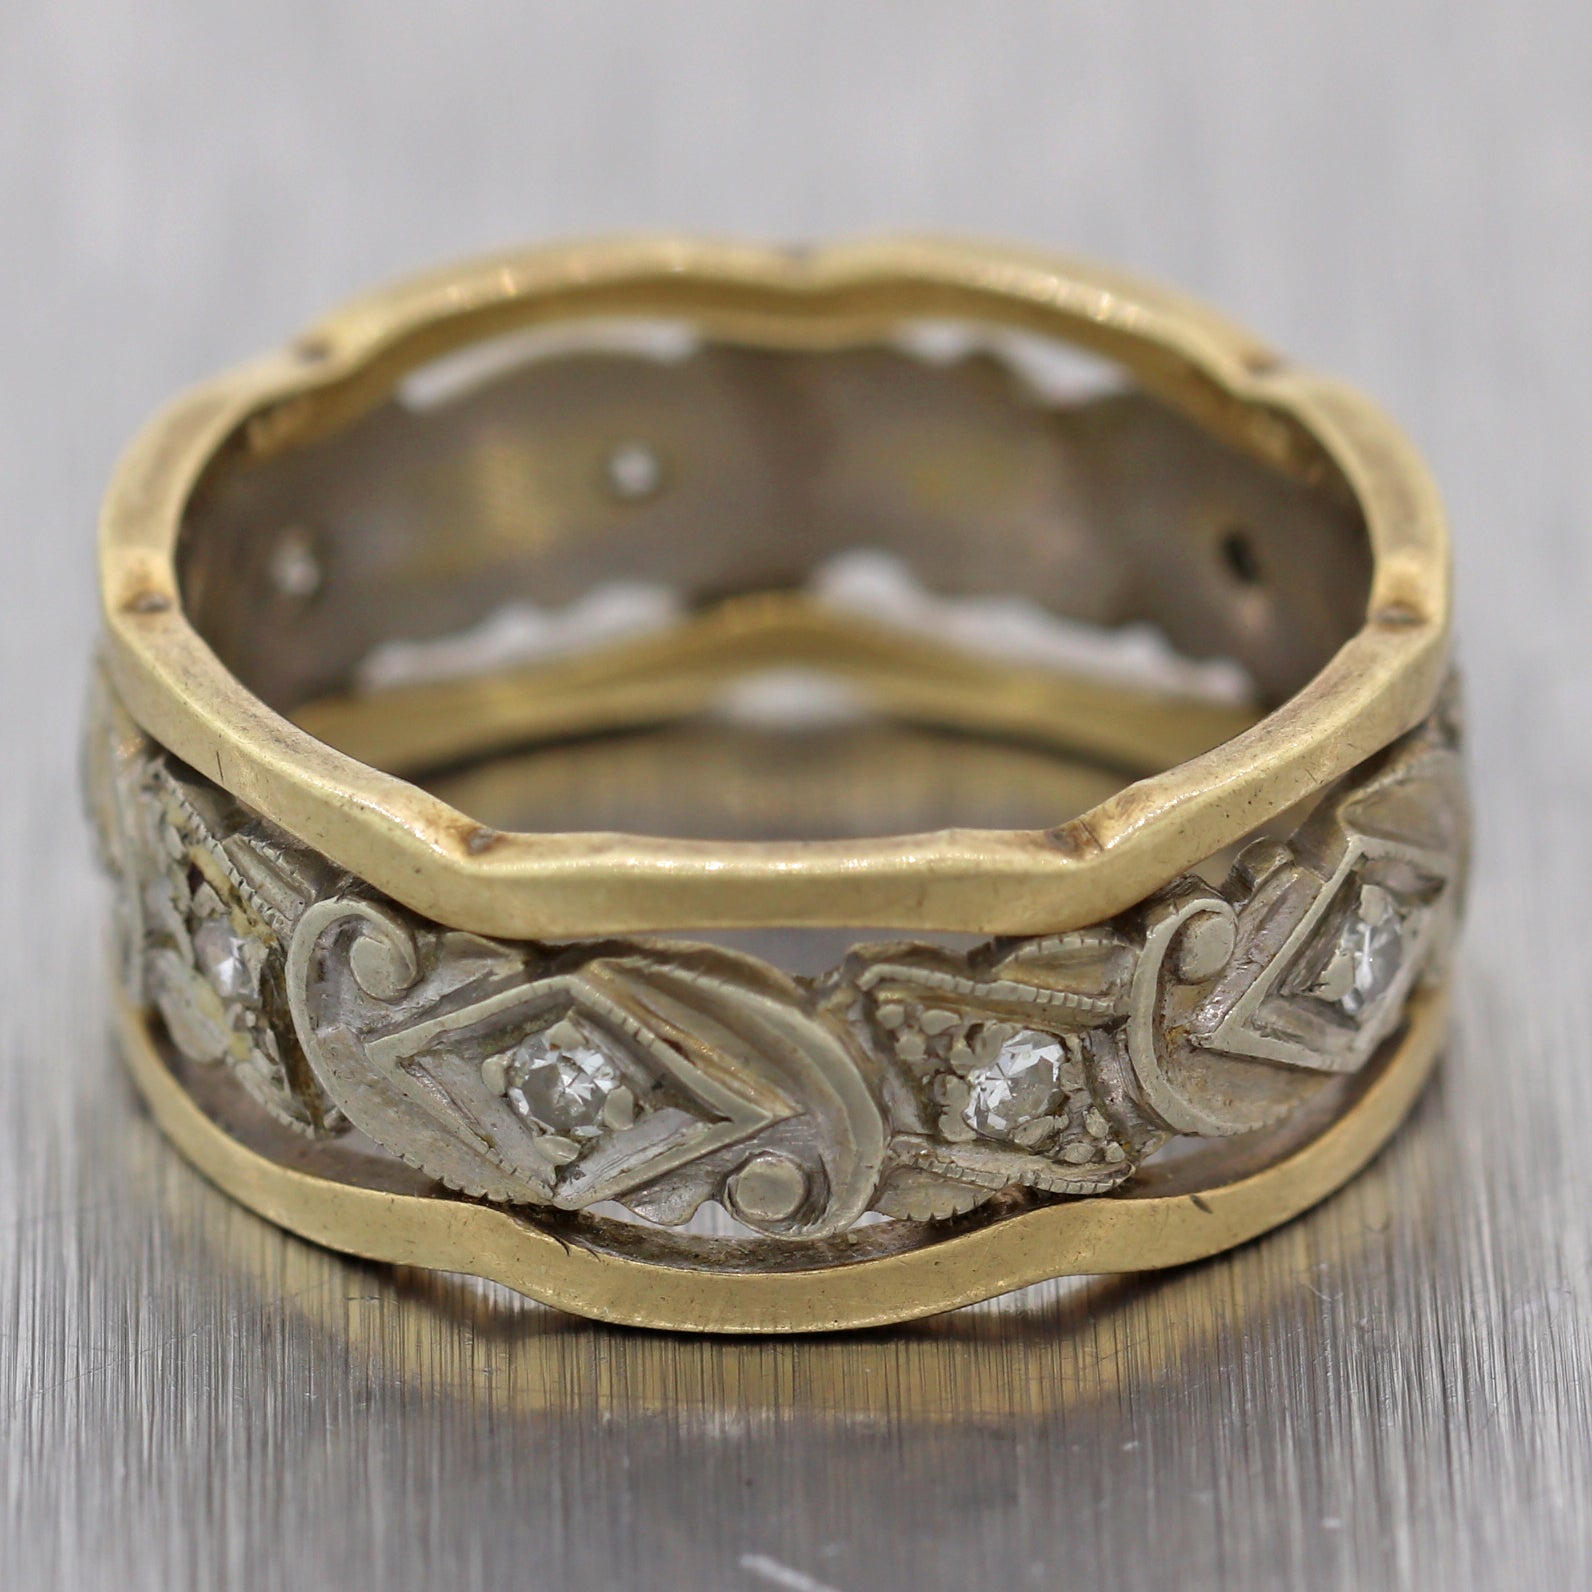 1880's Antique Victorian 14k Yellow & White Gold 0.15ctw Diamond Band Ring